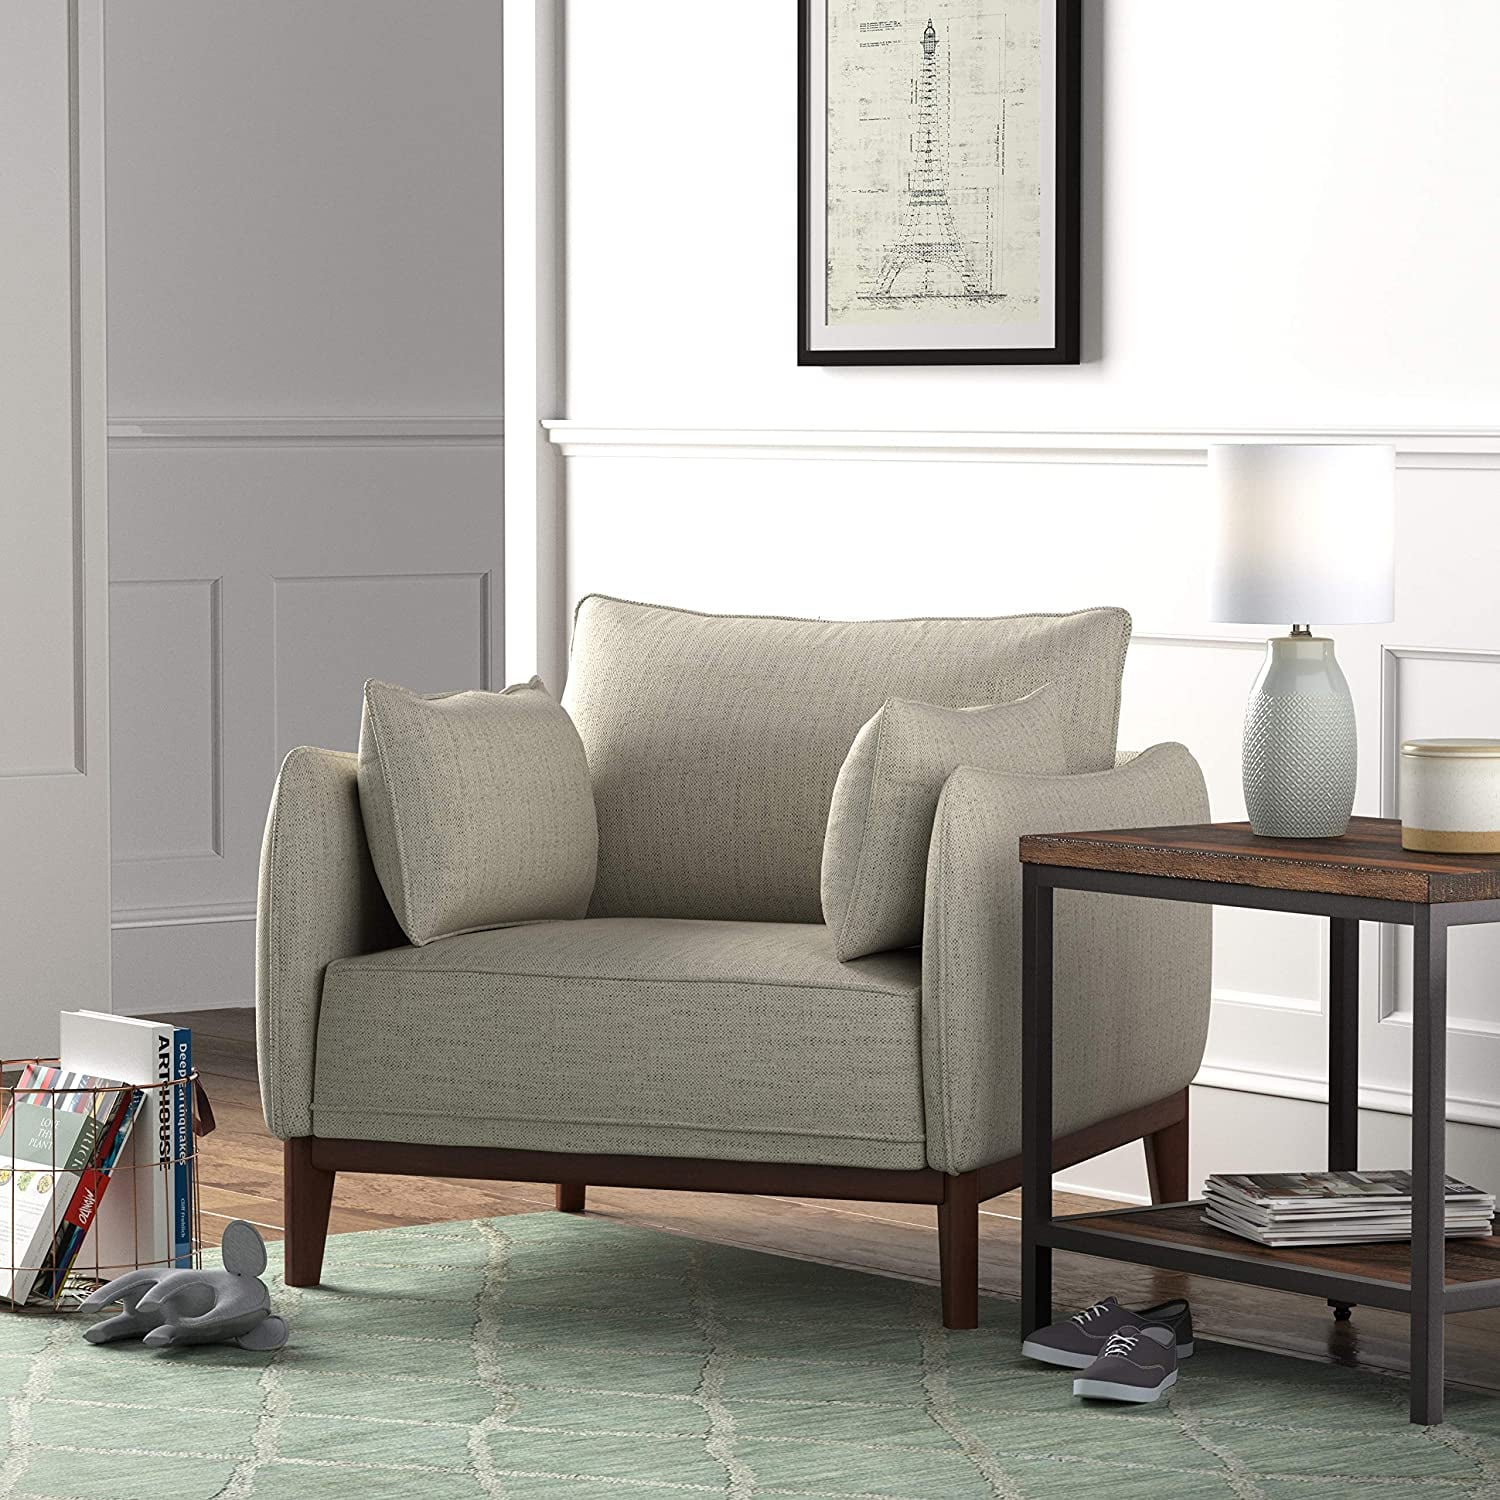 Best and Most Comfortable Lounge Chairs  POPSUGAR Home